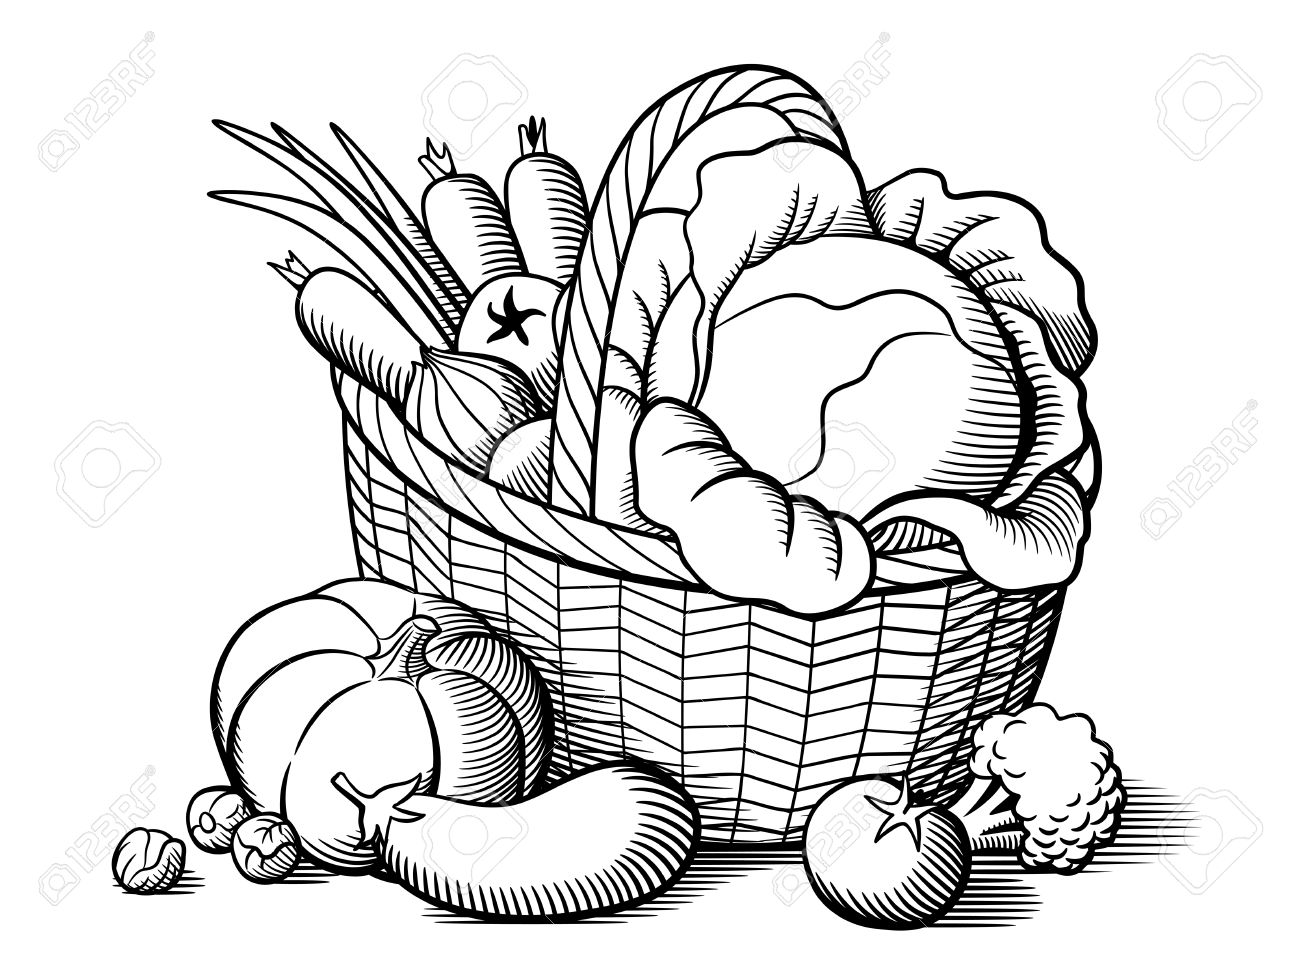 Basket with vegetables. Stylized black and white vector illustration.